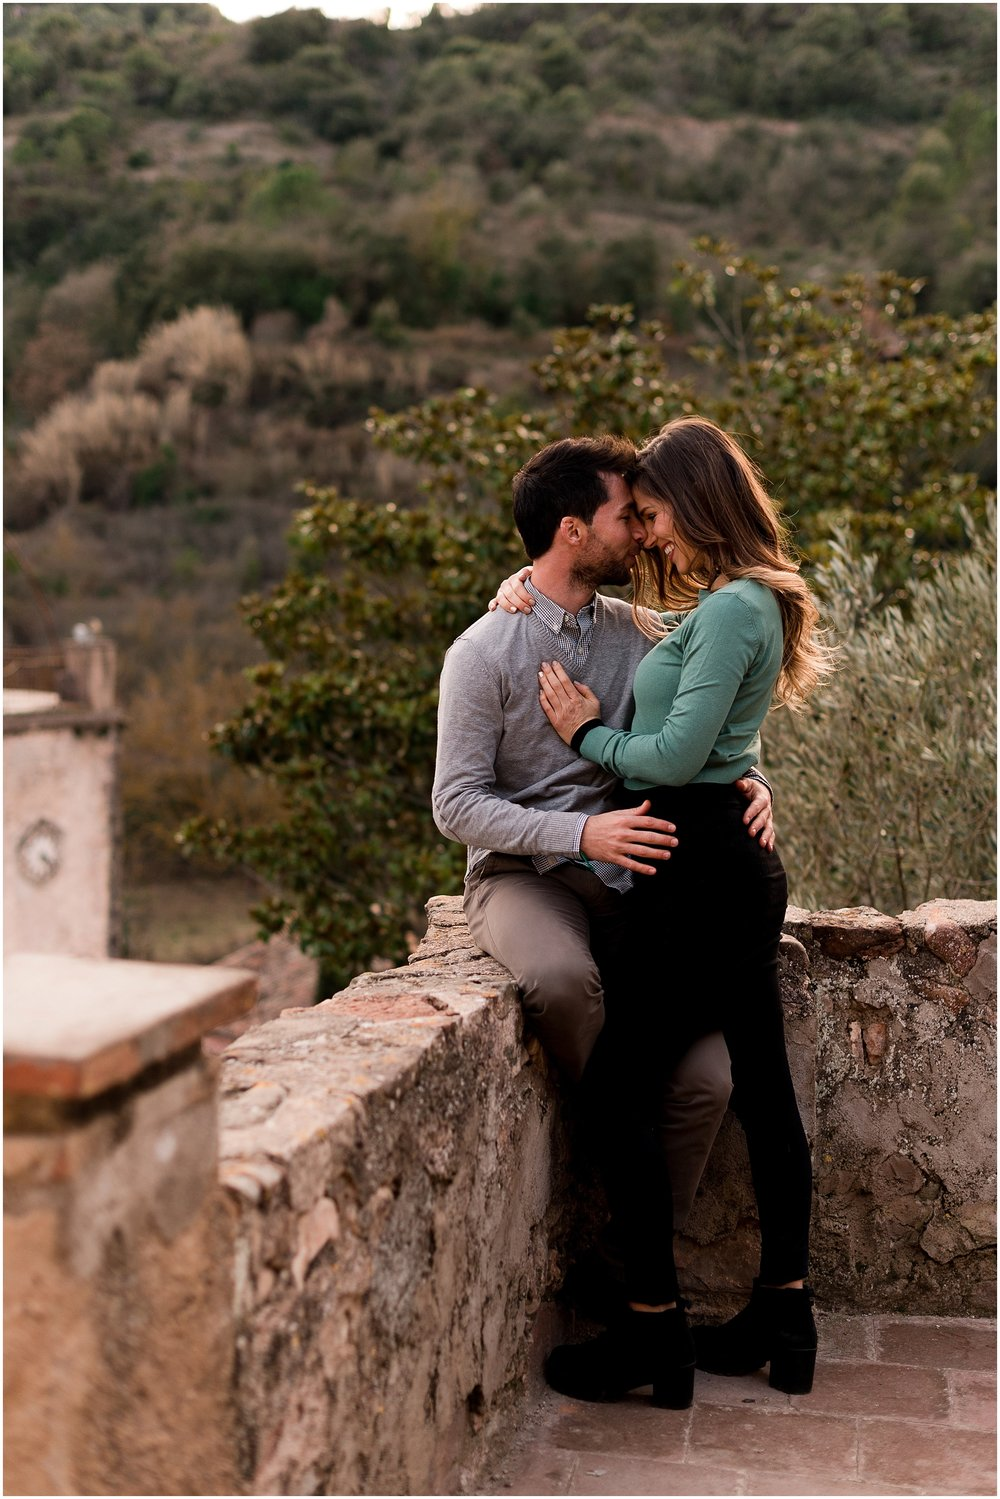 Hannah Leigh Photography Barcelona Spain Engagement Session_3290.jpg